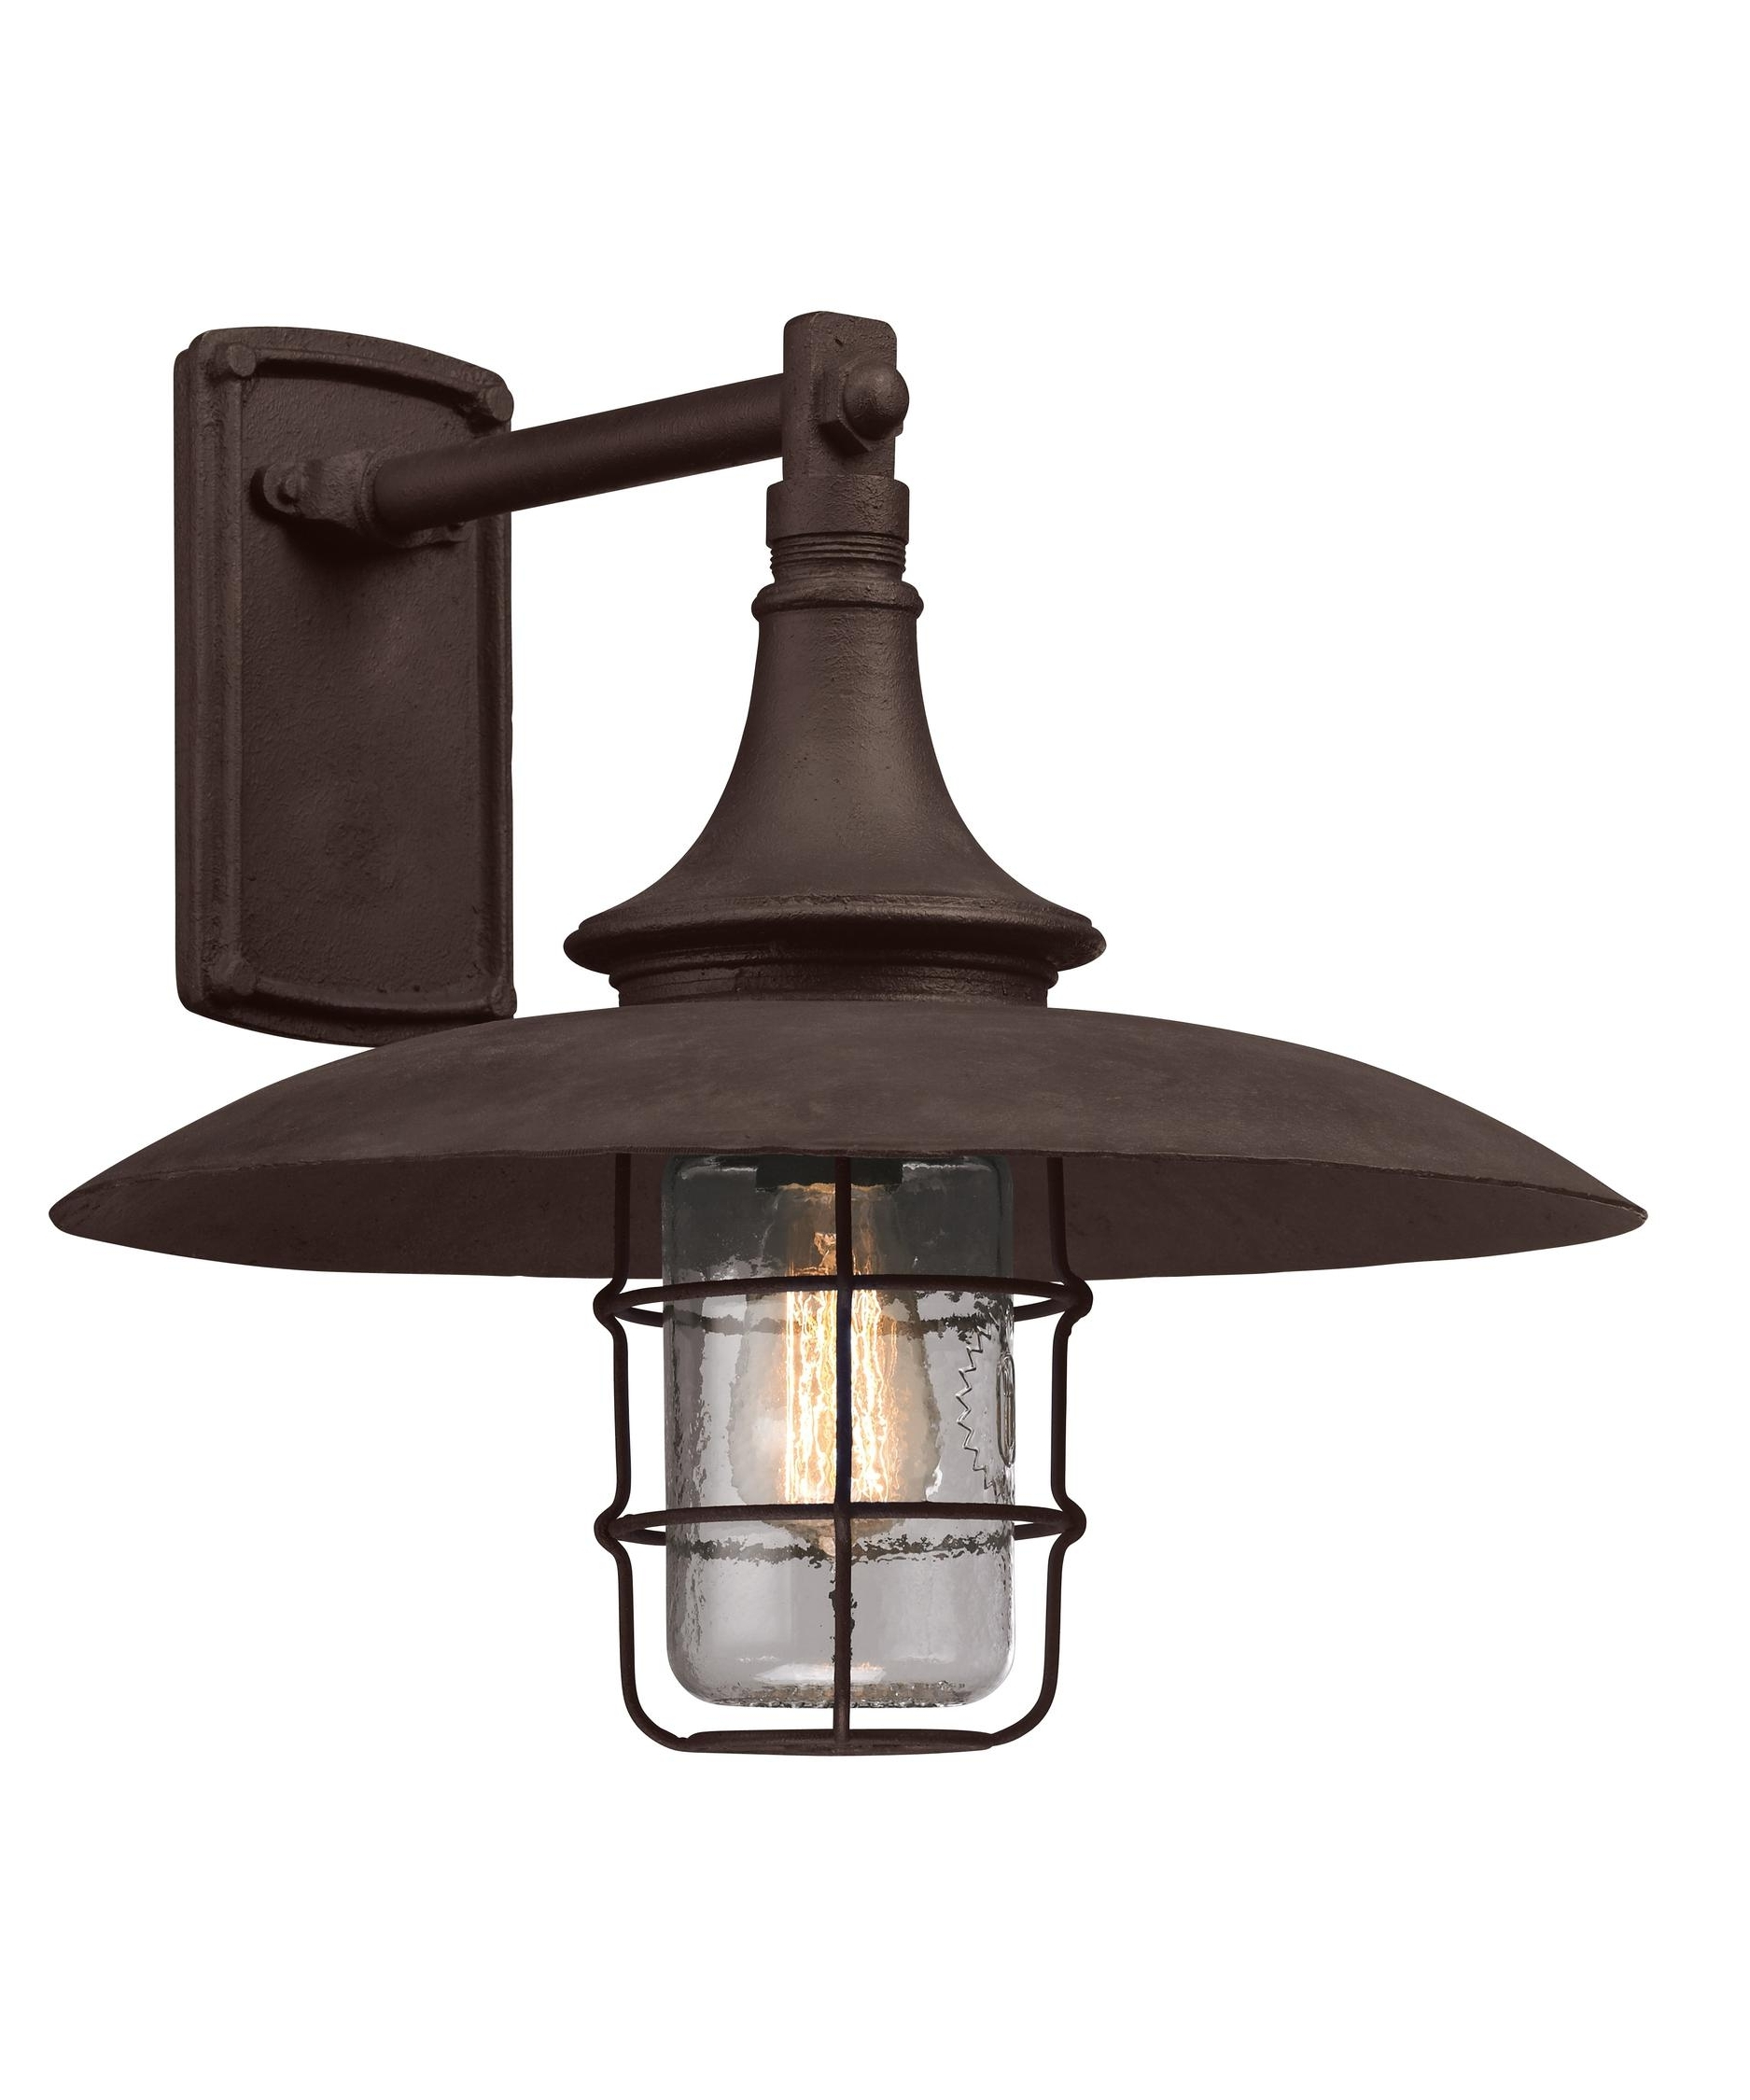 2019 Troy Lighting Outdoor Wall Sconces Pertaining To Troy Lighting B3222 Allegany 16 Inch Wide 1 Light Outdoor Wall Light (Gallery 3 of 20)